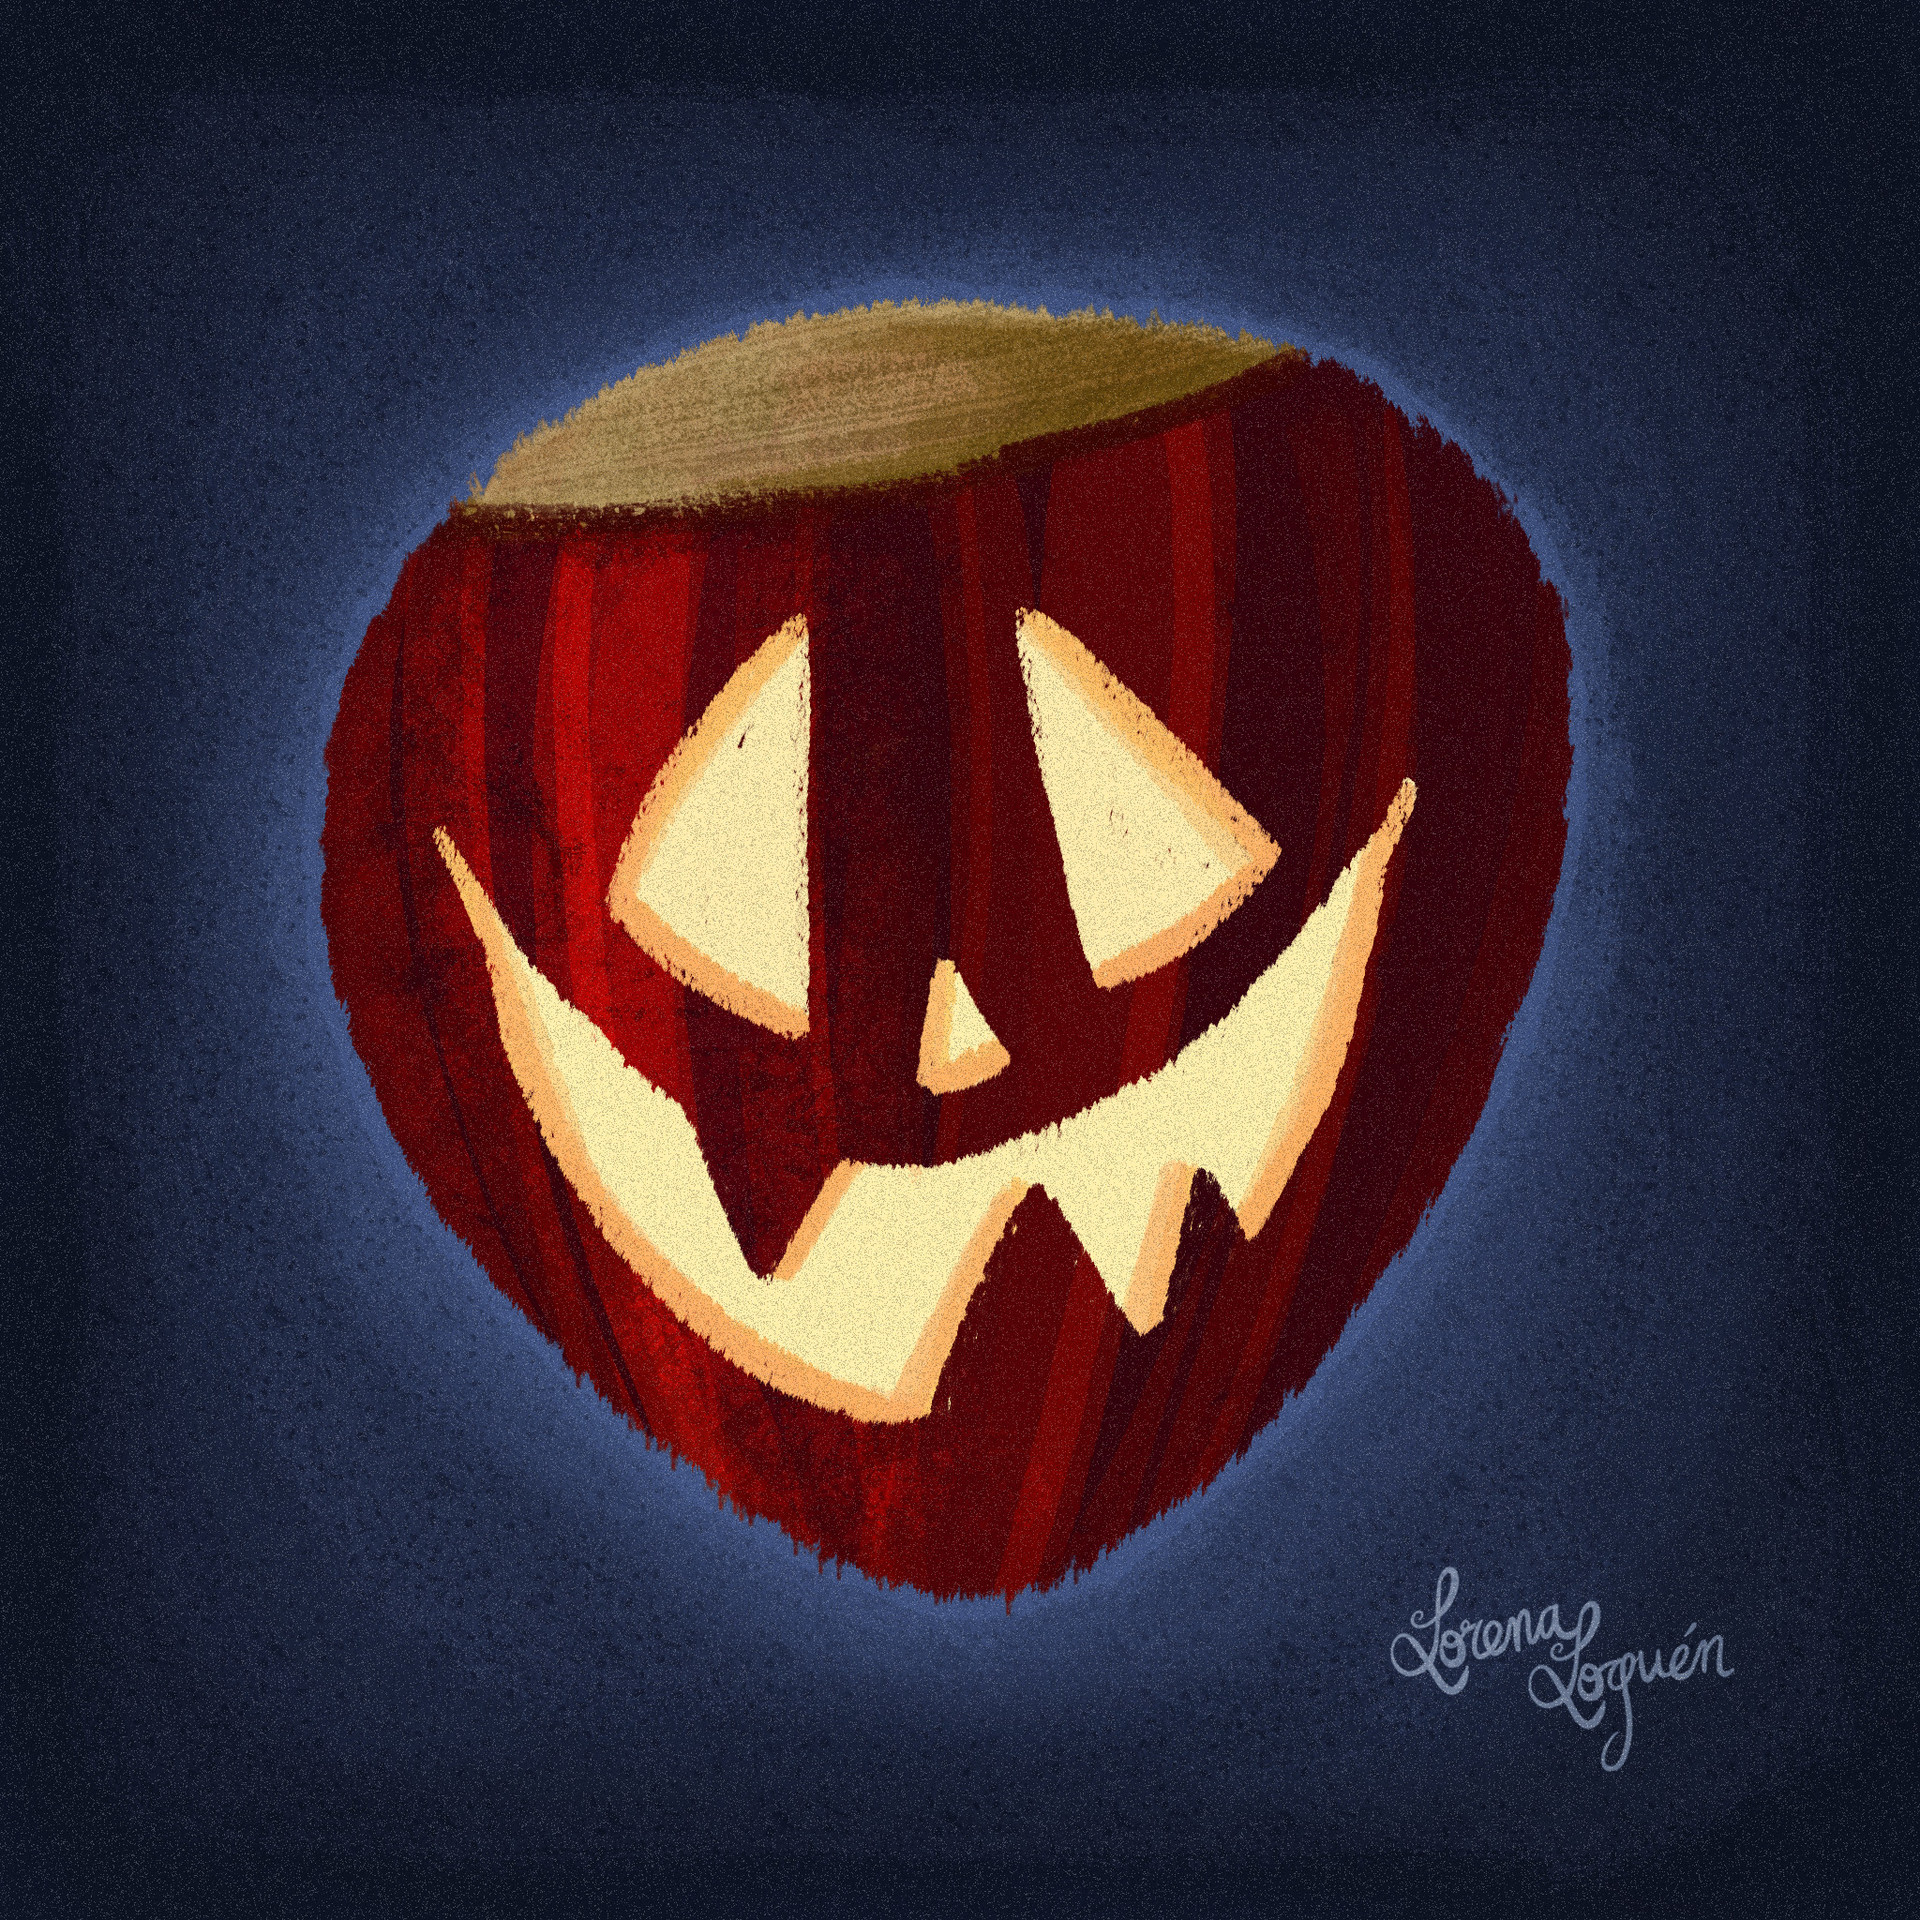 Lorena loguen happy castanyalloween 2016 chestnut by lorena loguen